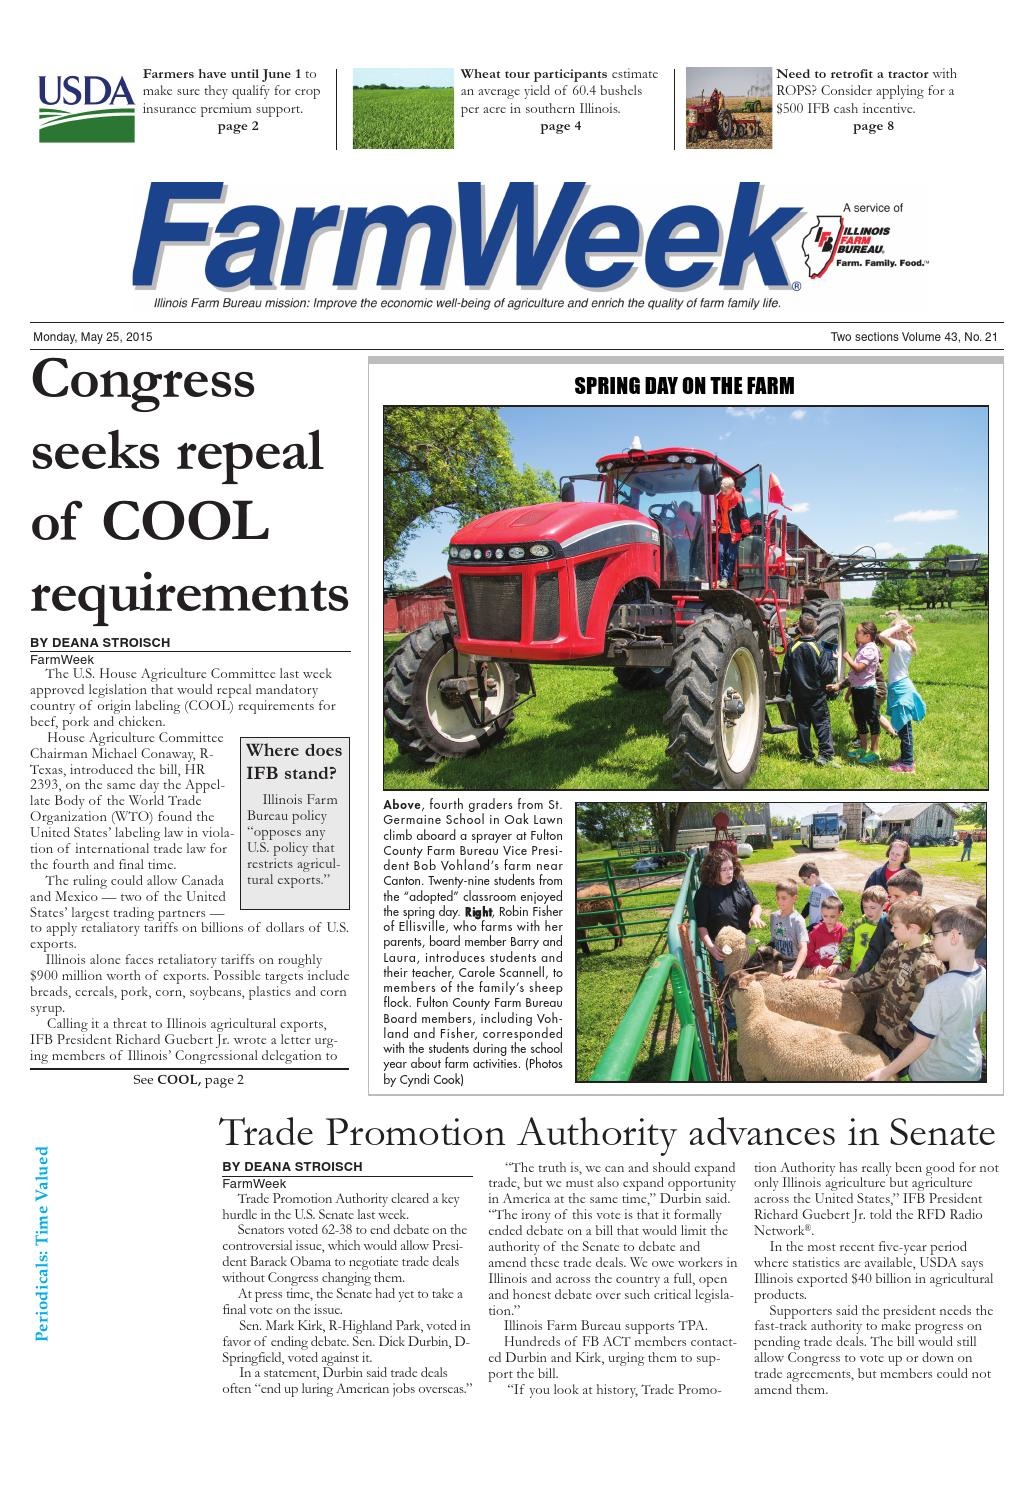 Farmweek may 25, 2015